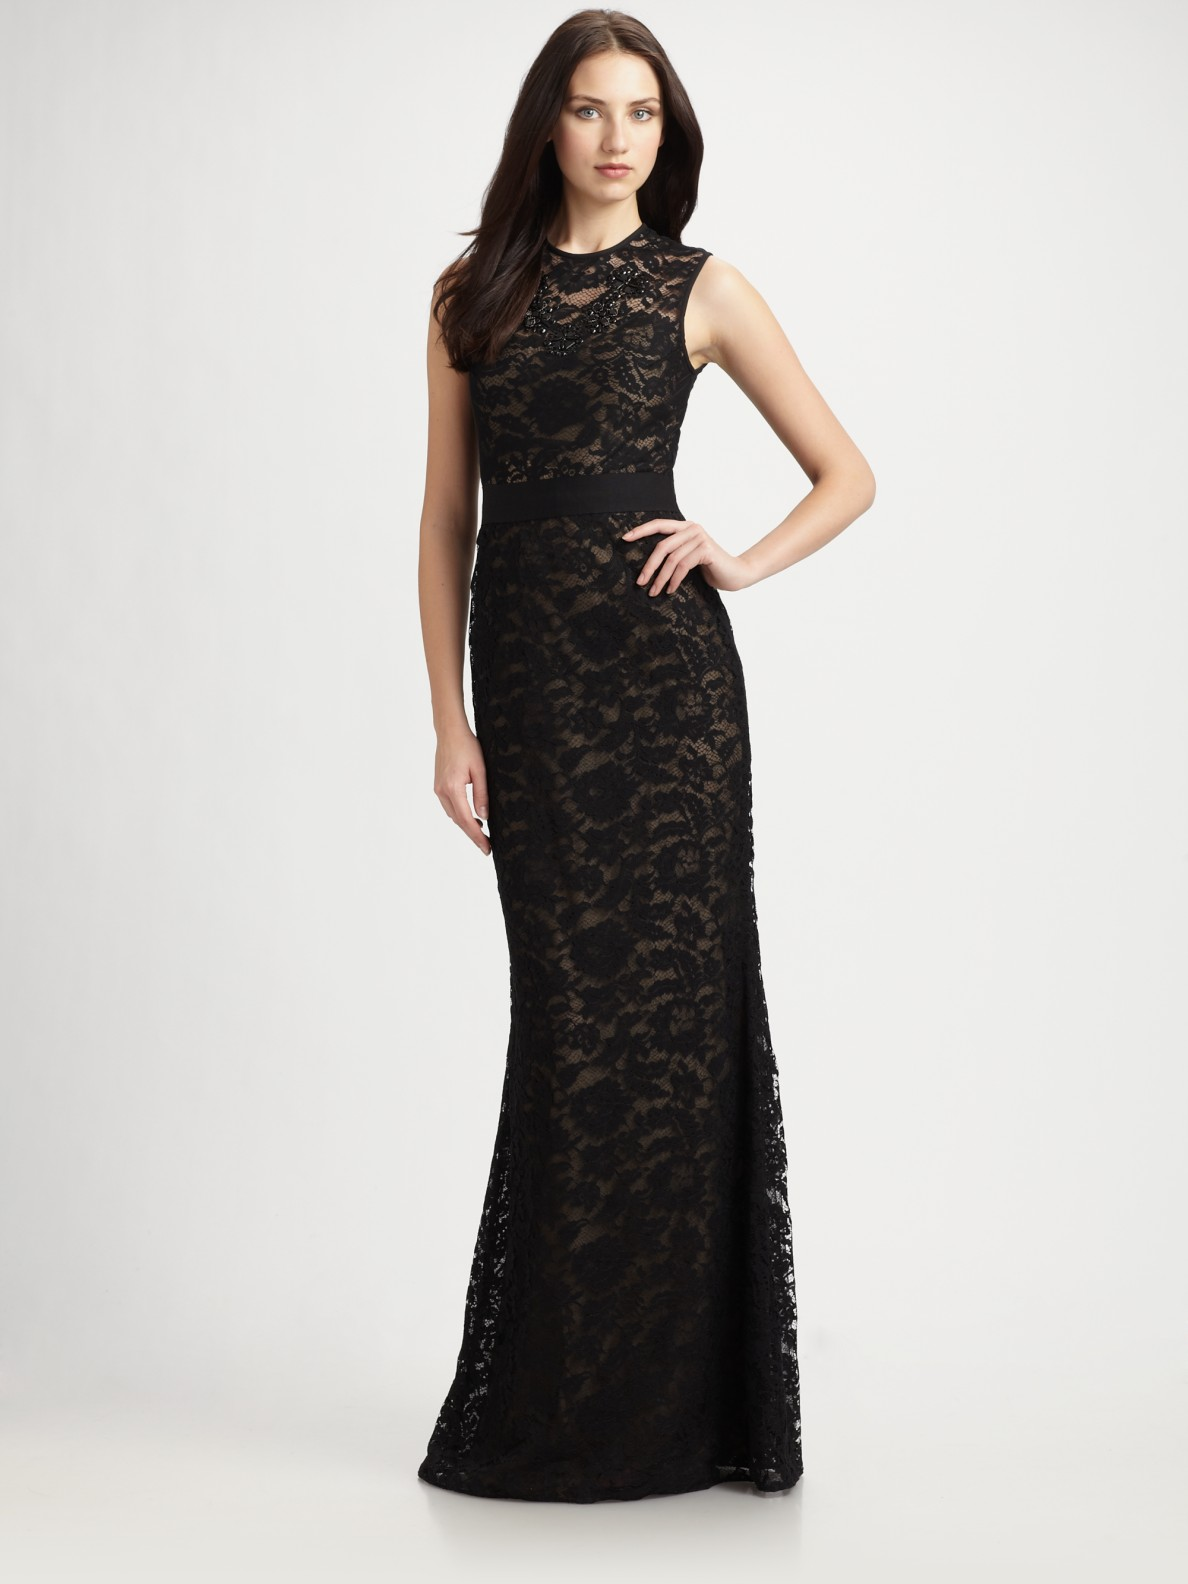 Lyst - Ml Monique Lhuillier Lace Gown in Black